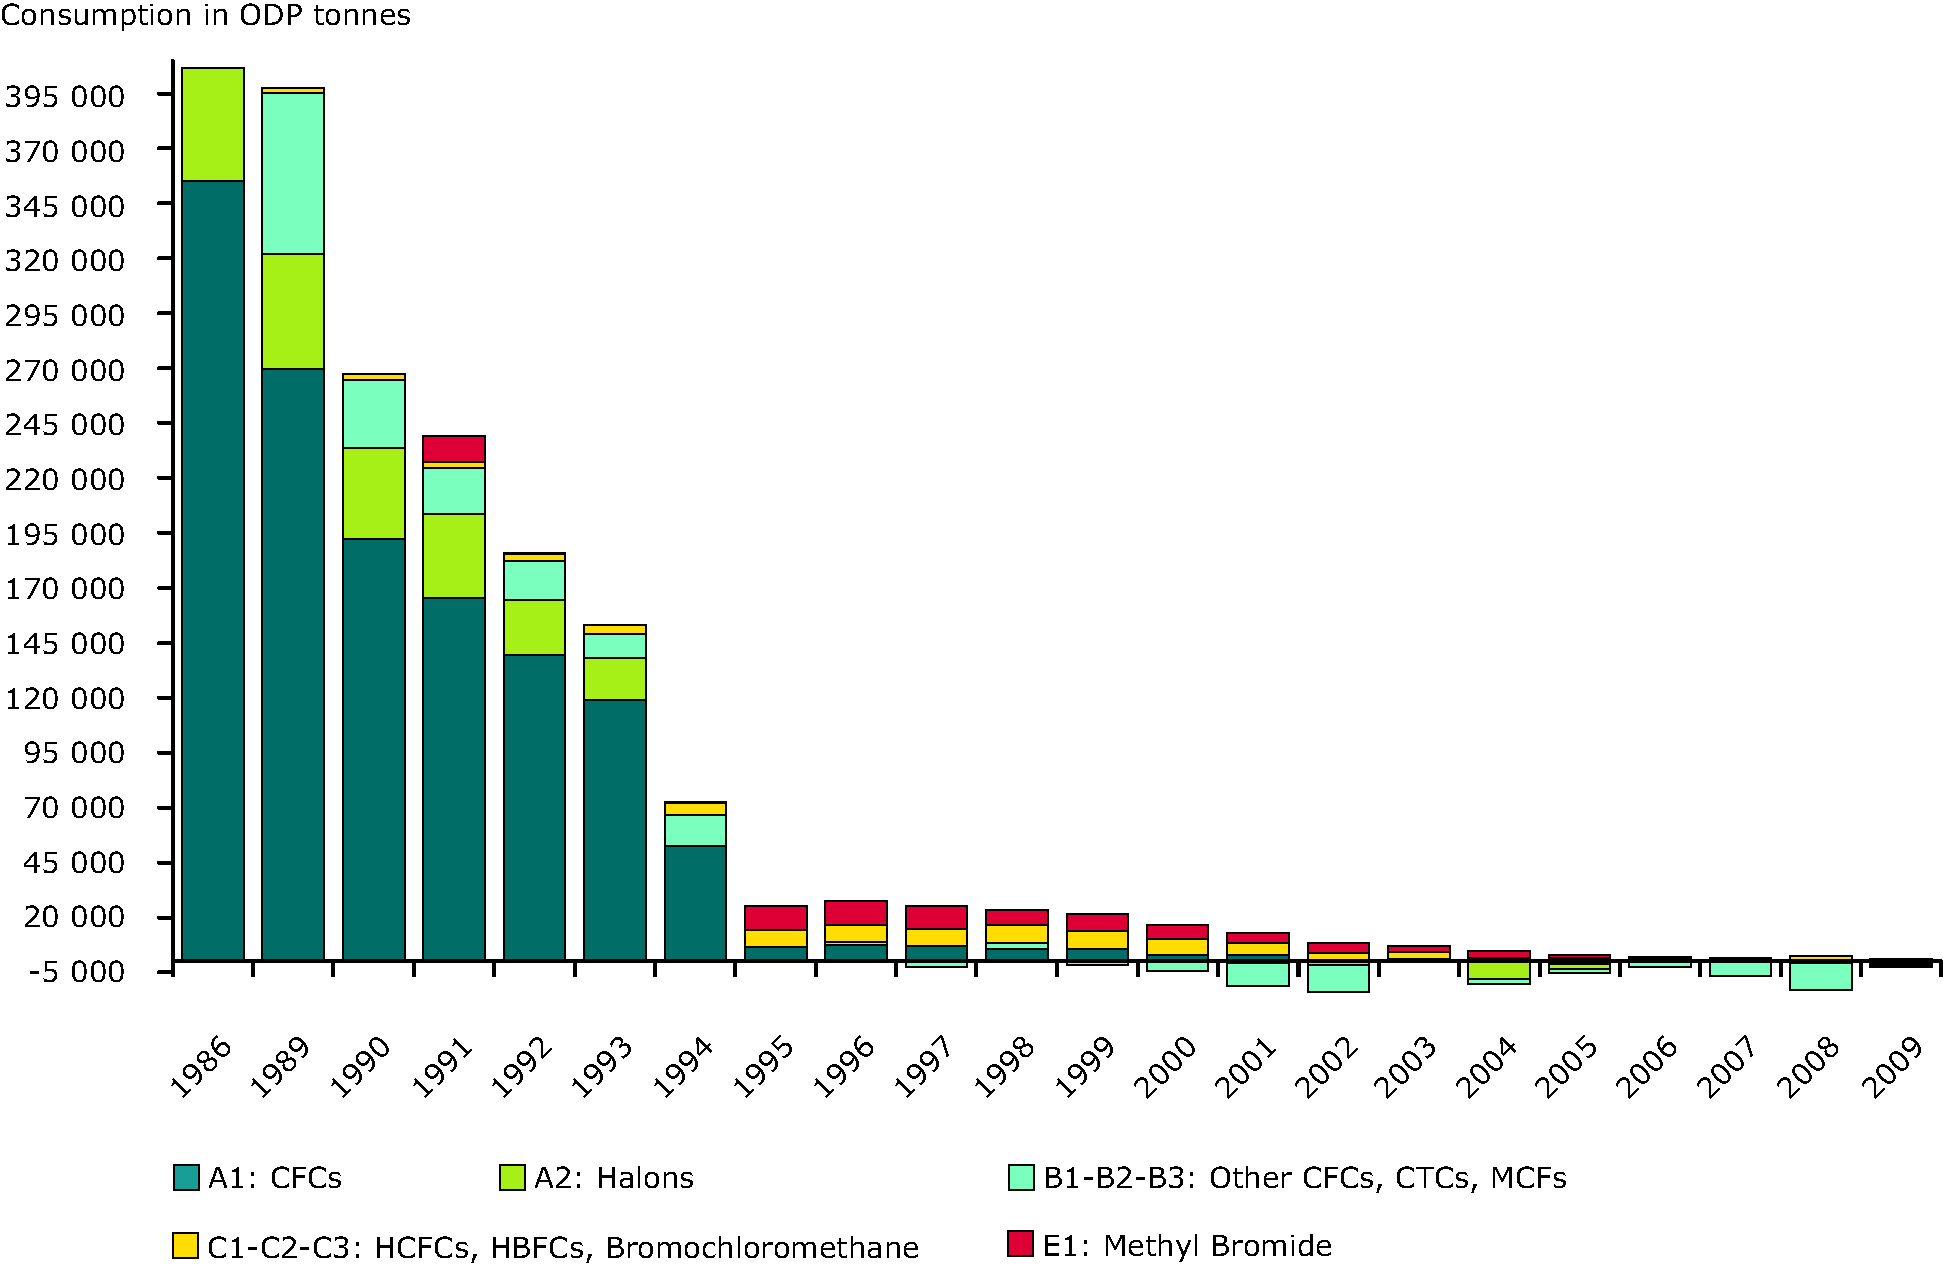 Consumption of ozone depleting substances (EU-27), 1986-2009